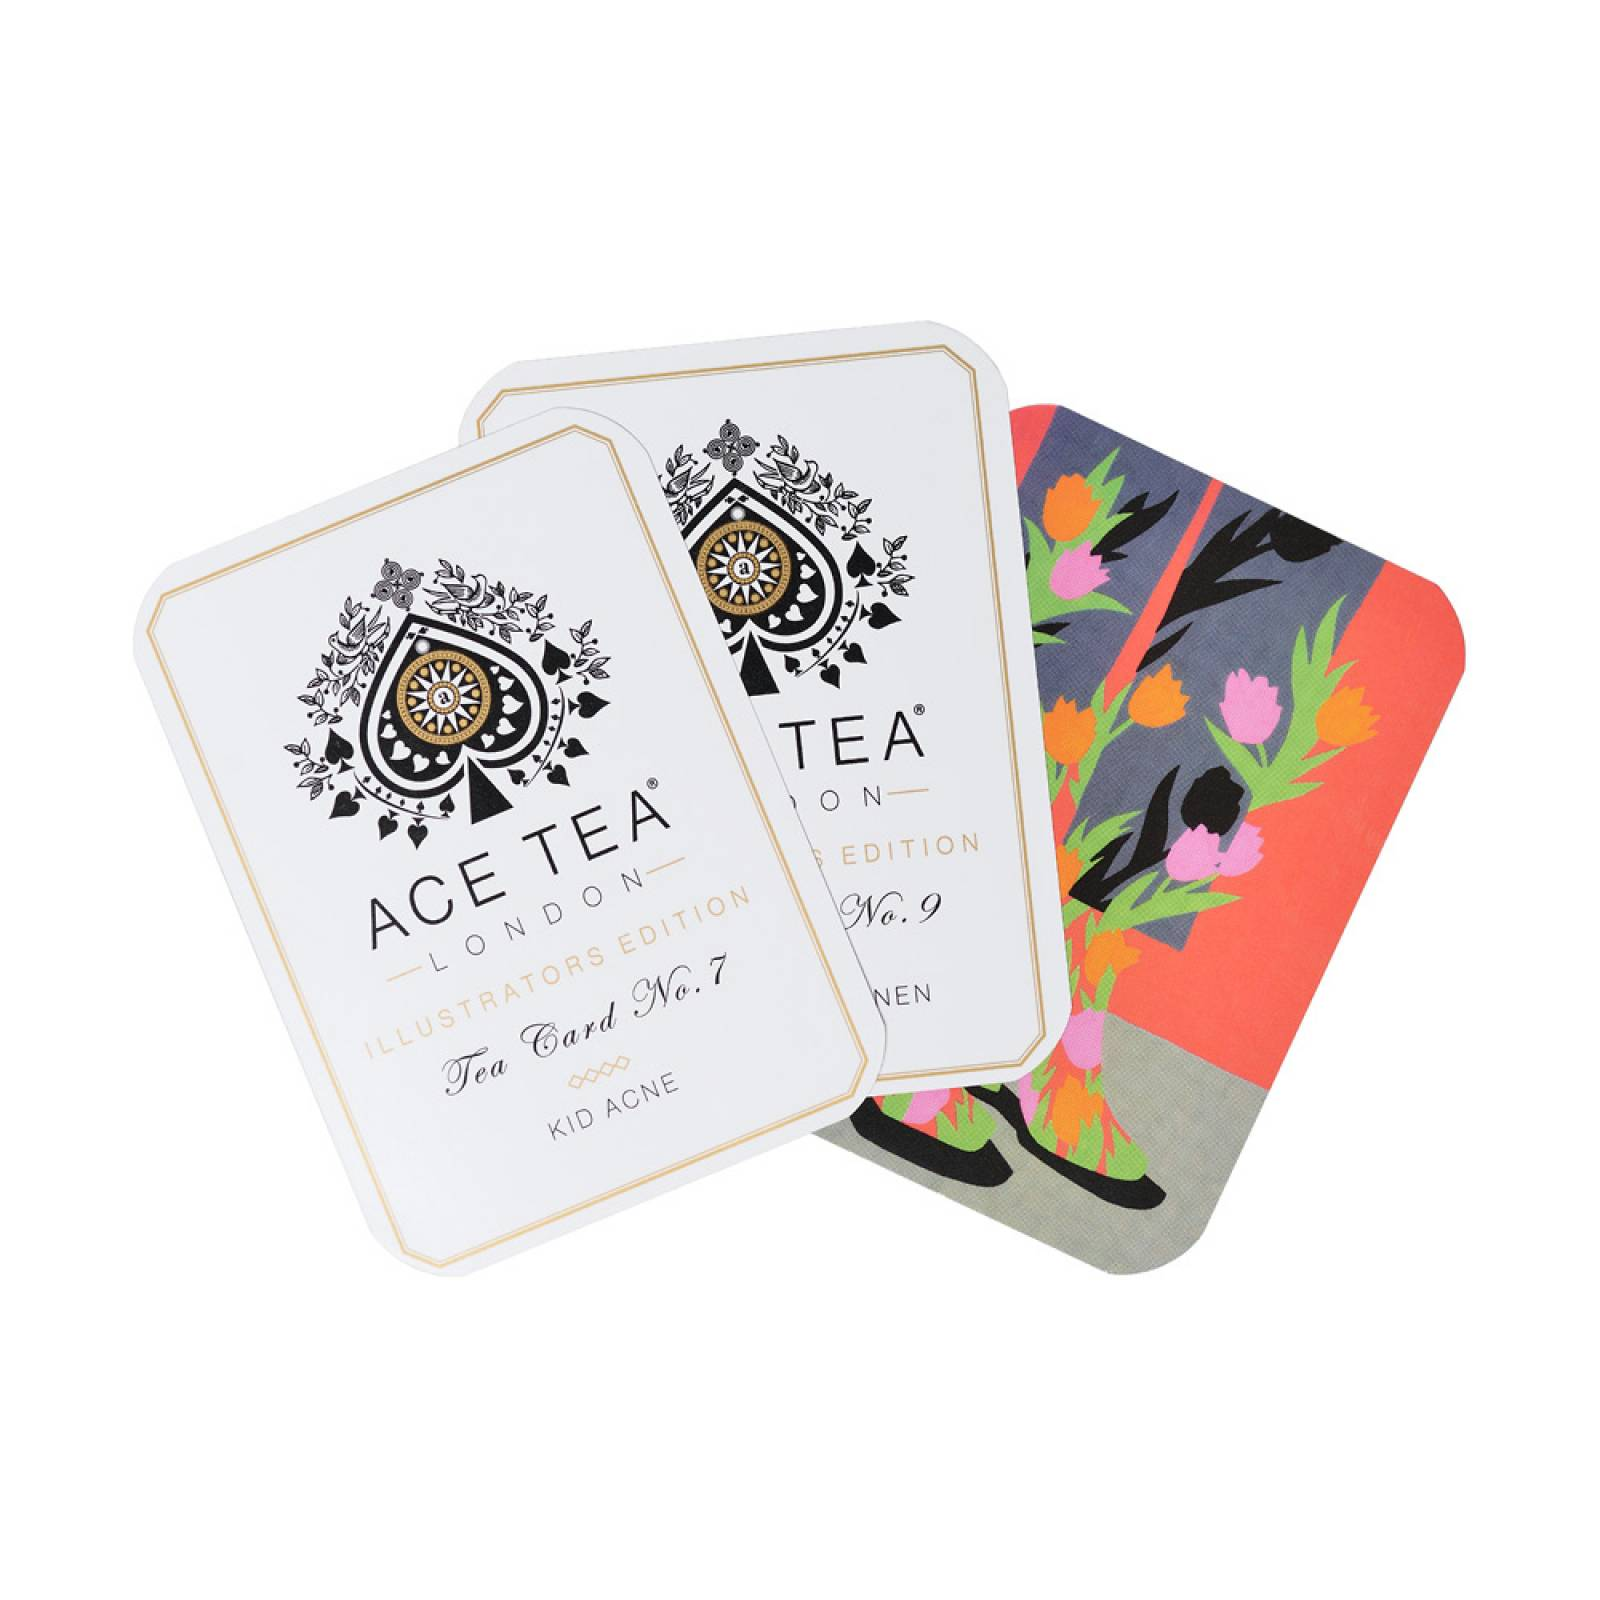 Ace Tea - Hot Ginger Green Tea thumbnails